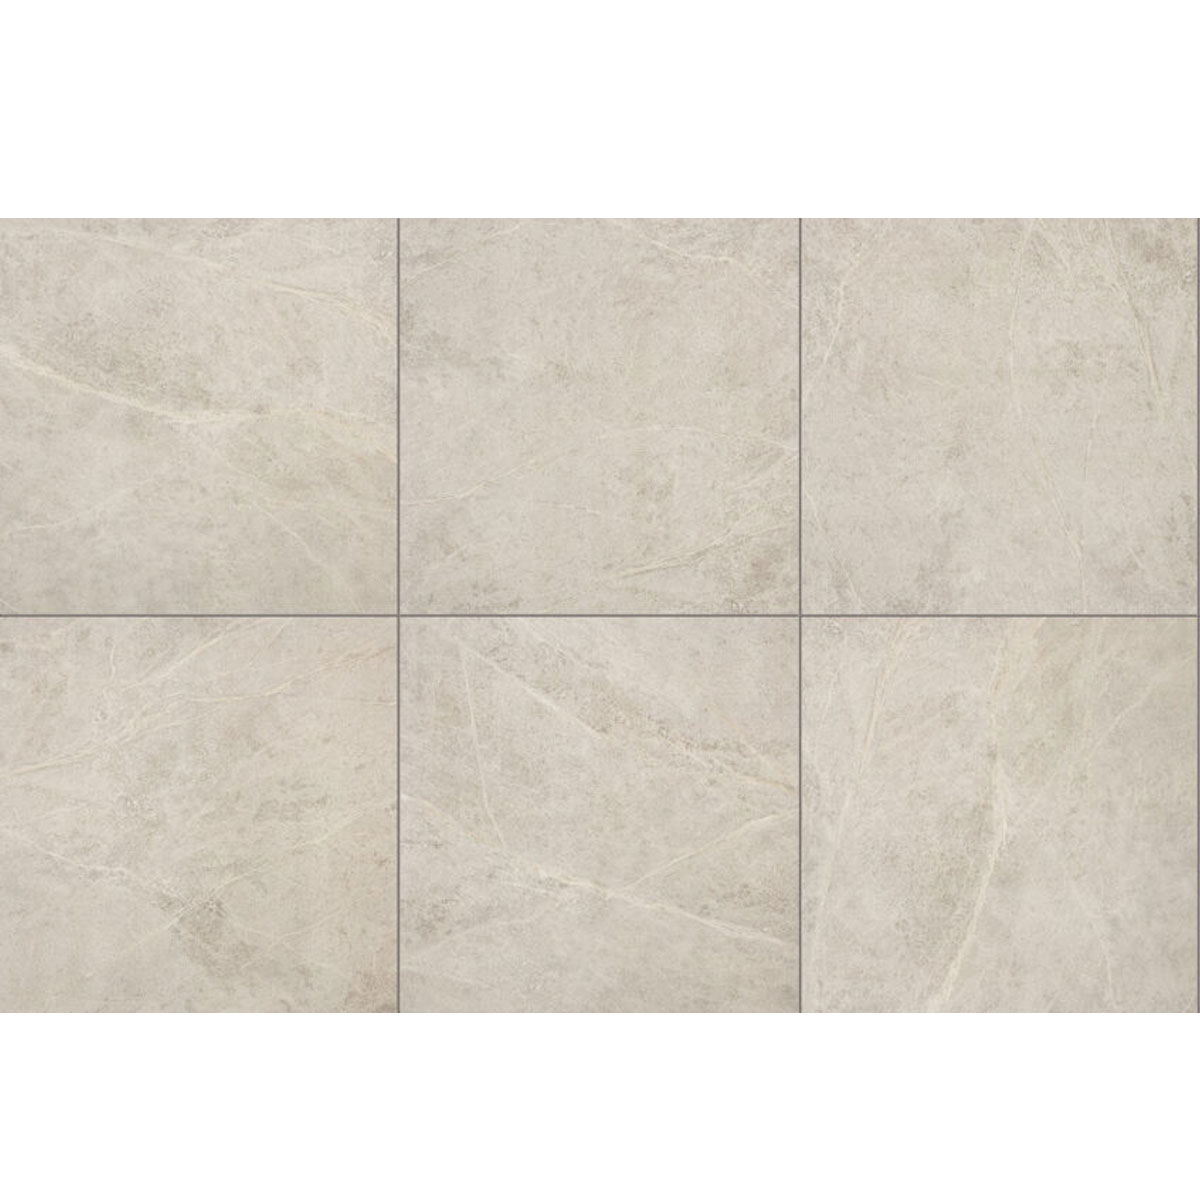 Soap Stone - White - Marble Look Tiles - Stone3 Brisbane